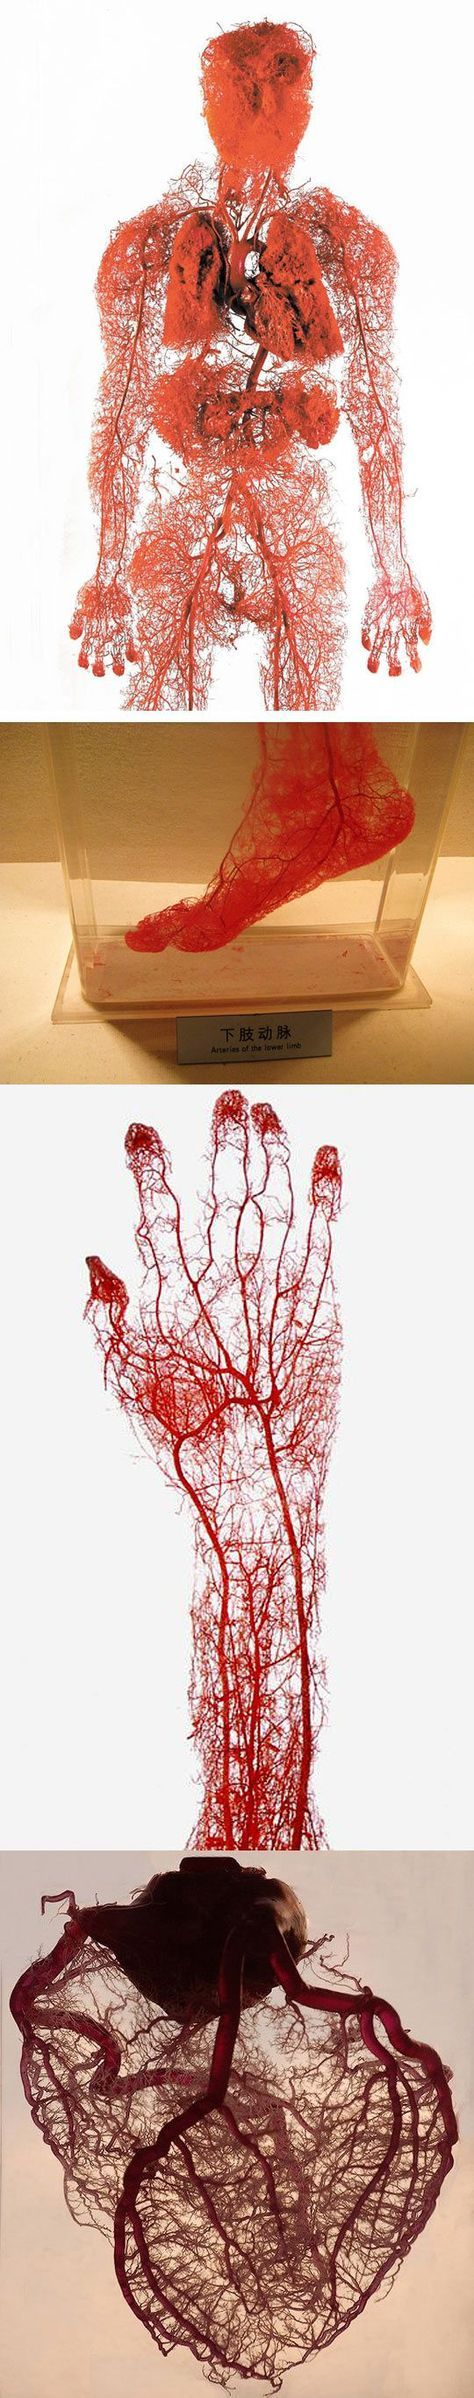 Difference Between Arteries and Veins (with Comparison ...